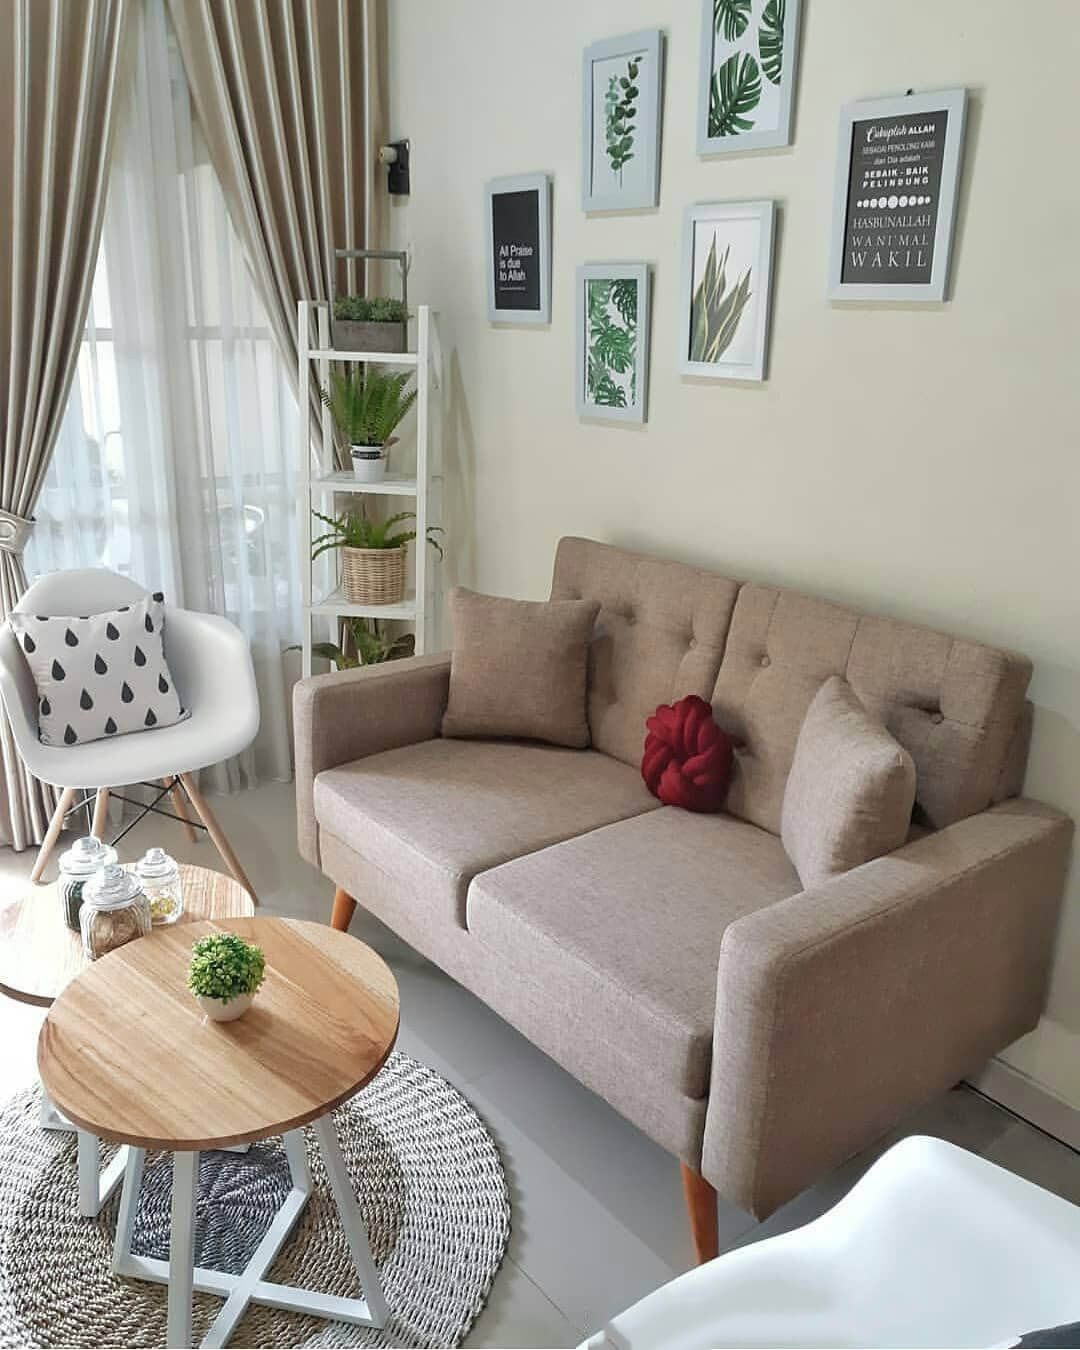 30 Big Ideas For Small Space That Will Blow Your Mind Engineering Discoveries Minimalist Living Room Decor Small Living Room Decor Minimalist Living Room Minimalist home living room design